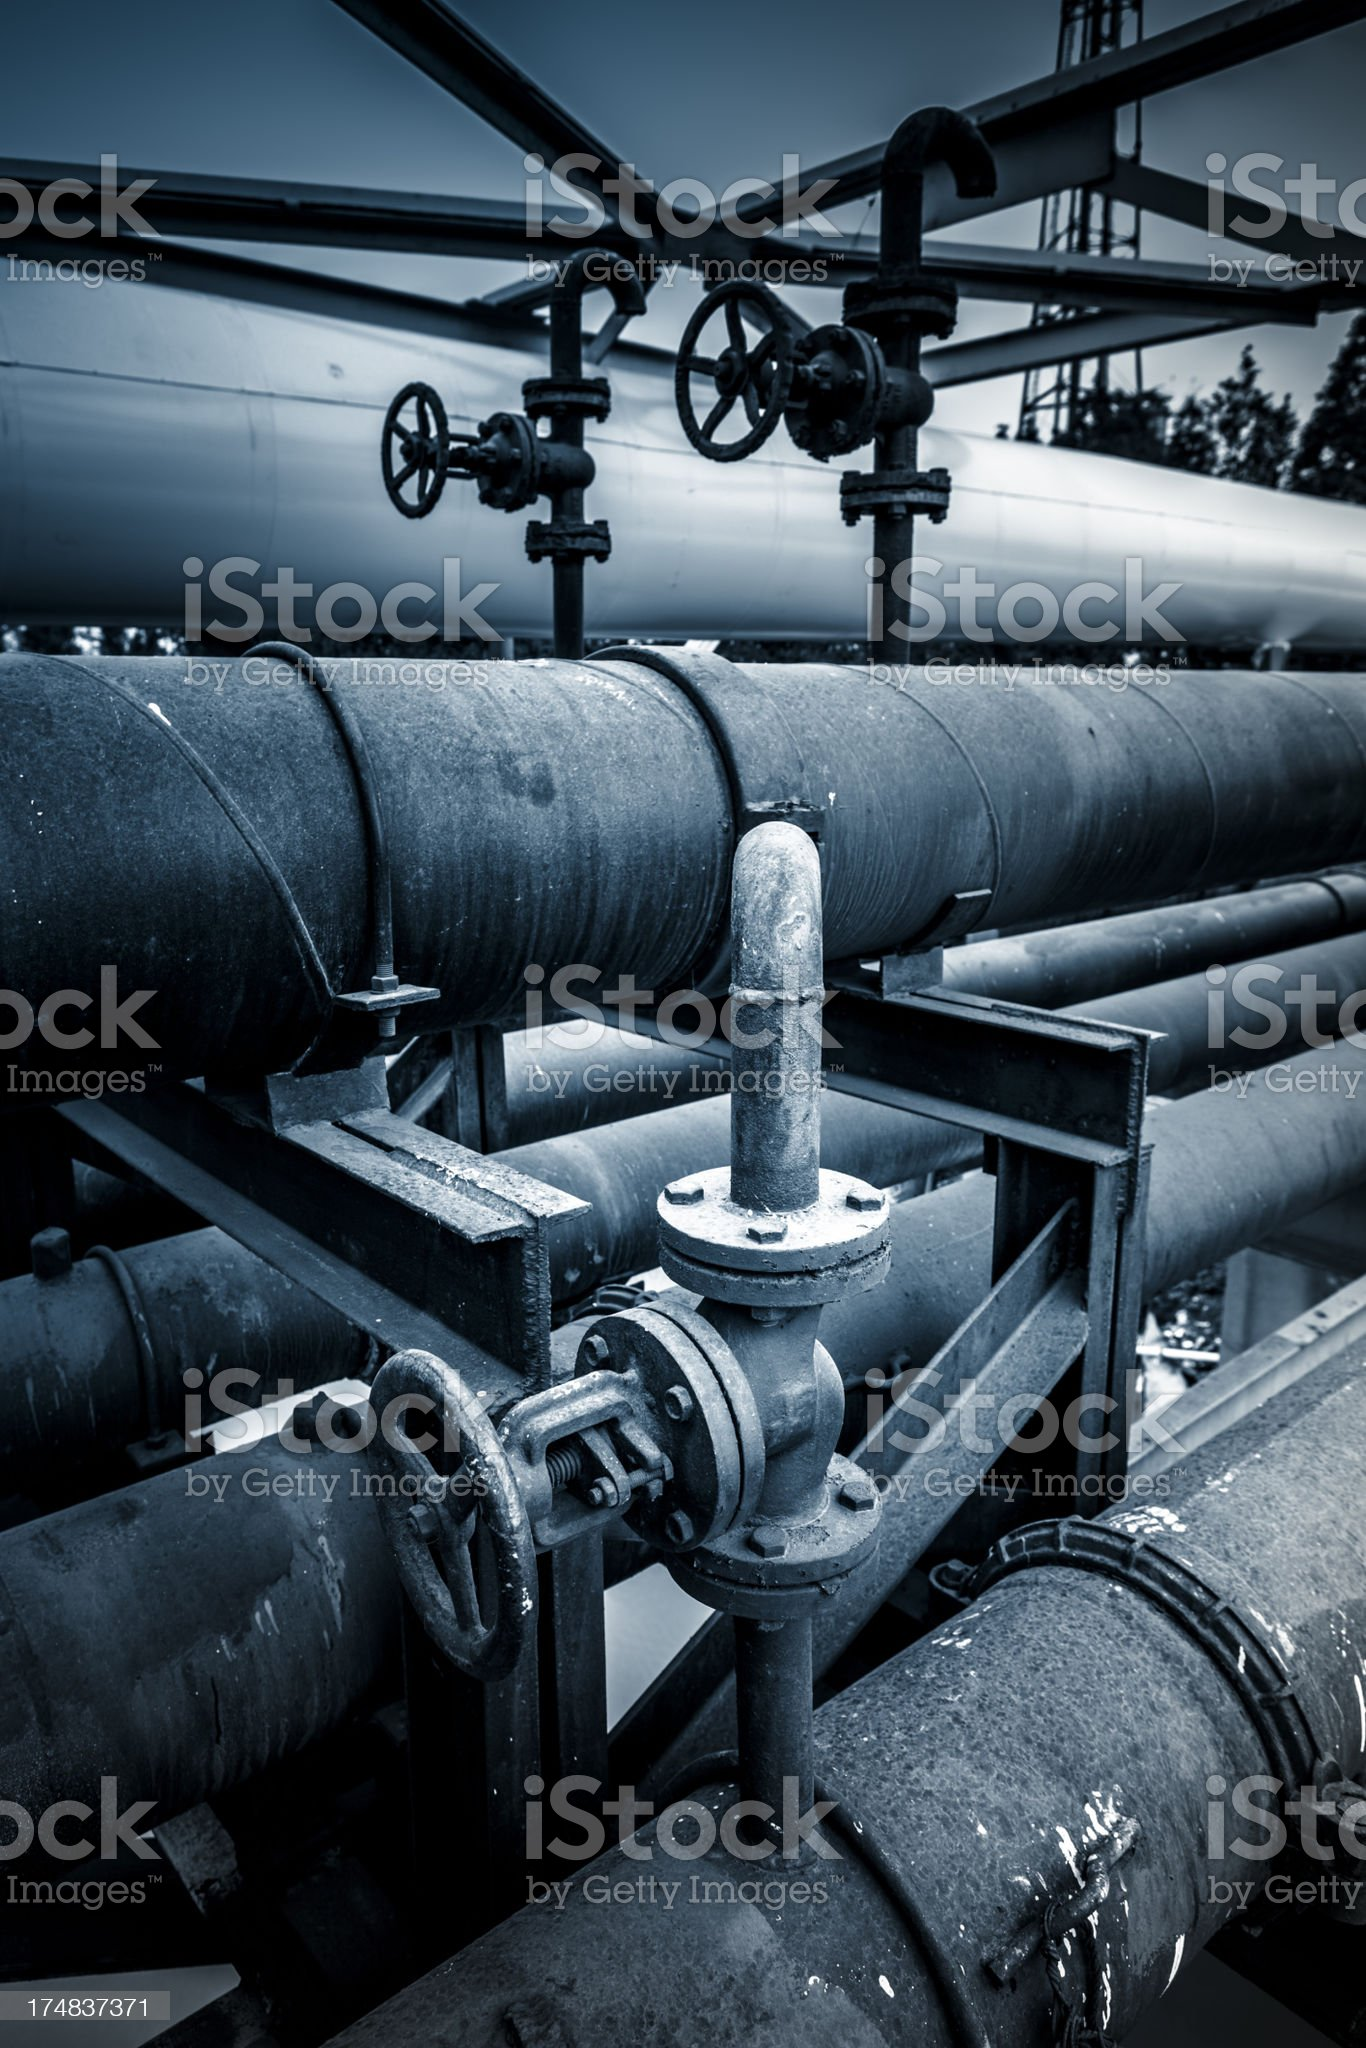 air conditioning systems royalty-free stock photo